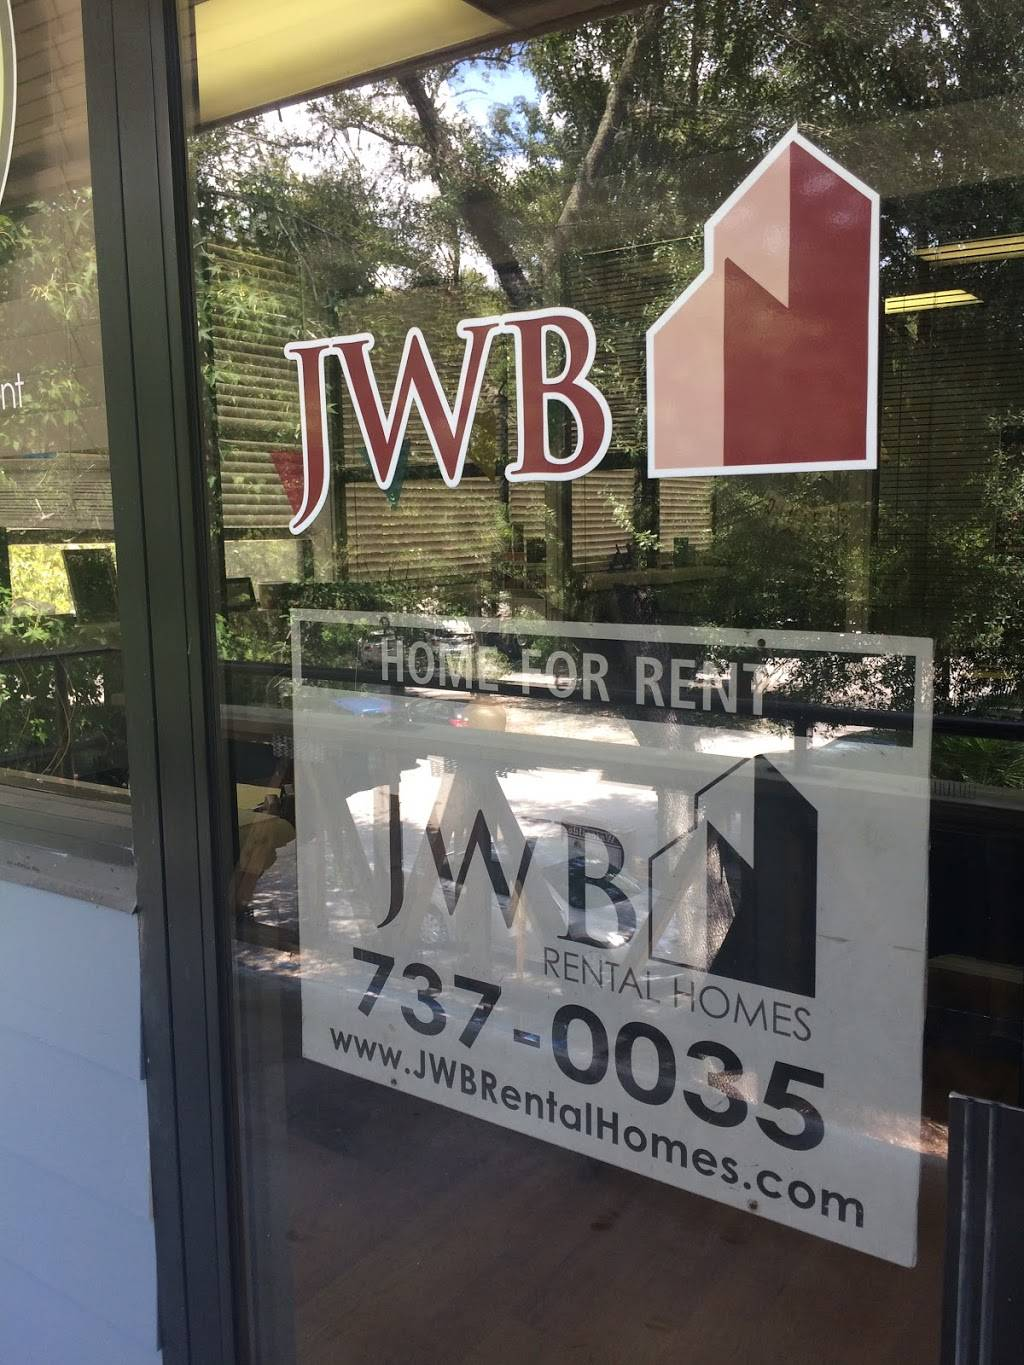 JWB Home Buyers - real estate agency  | Photo 2 of 10 | Address: 7563 Philips Hwy #110, Jacksonville, FL 32256, USA | Phone: (904) 333-3333